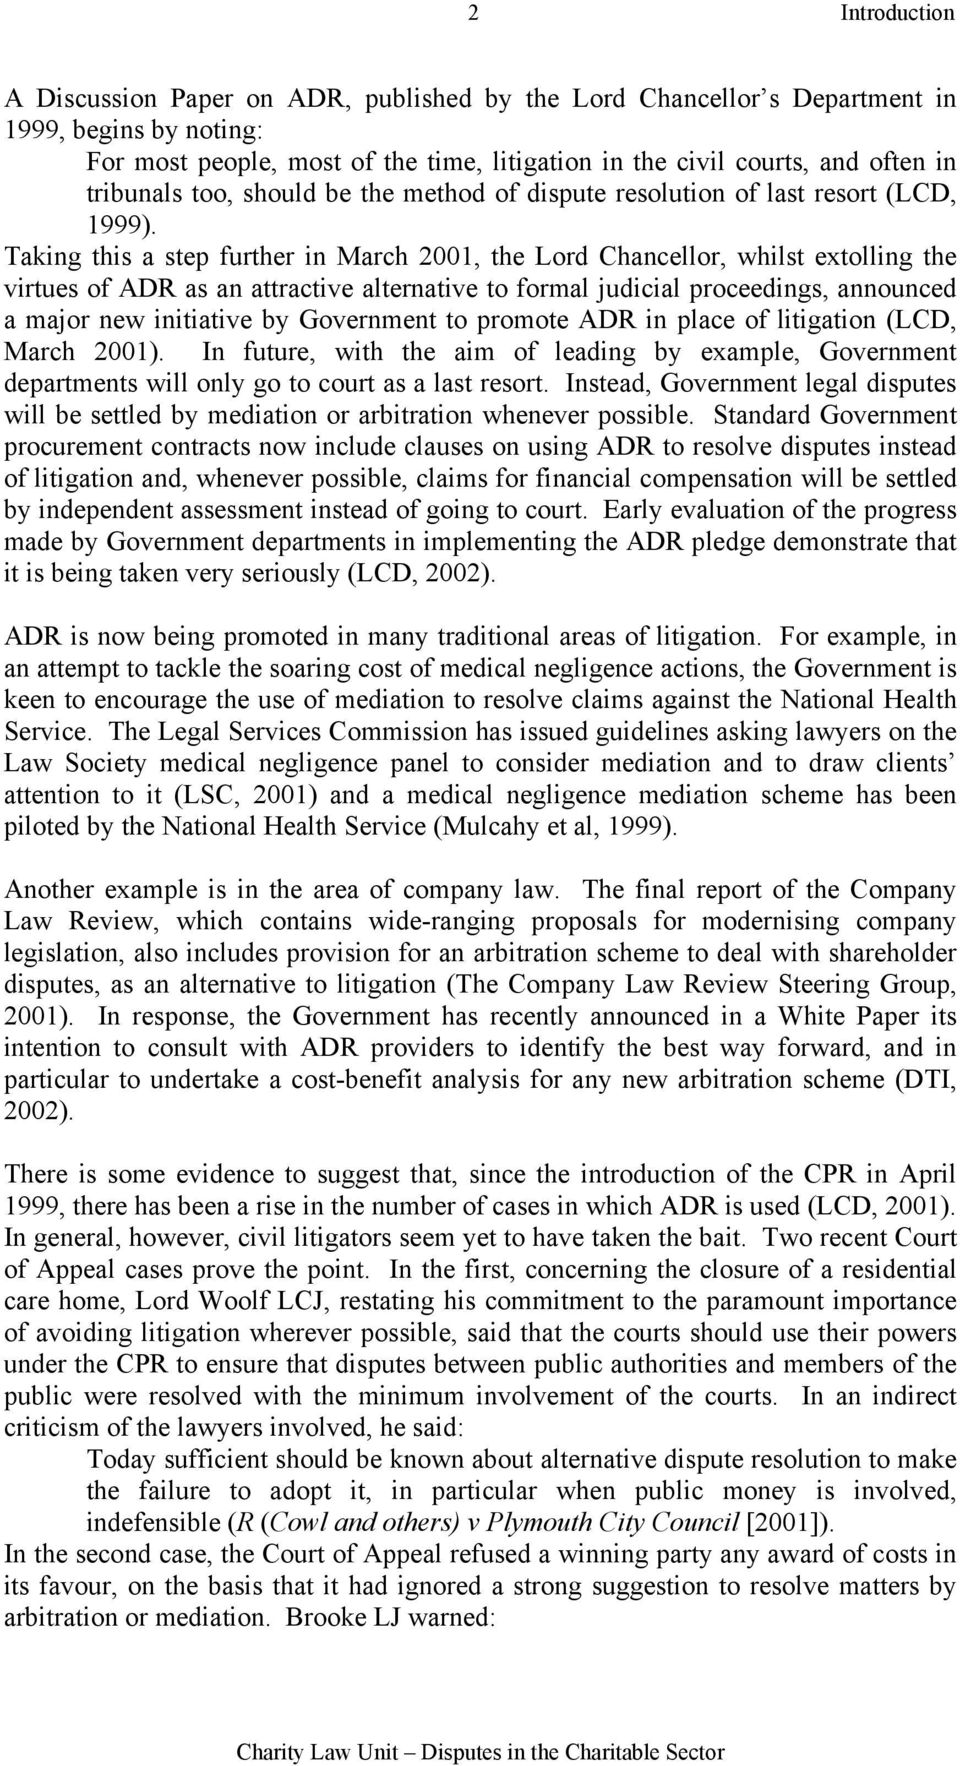 Taking this a step further in March 2001, the Lord Chancellor, whilst extolling the virtues of ADR as an attractive alternative to formal judicial proceedings, announced a major new initiative by